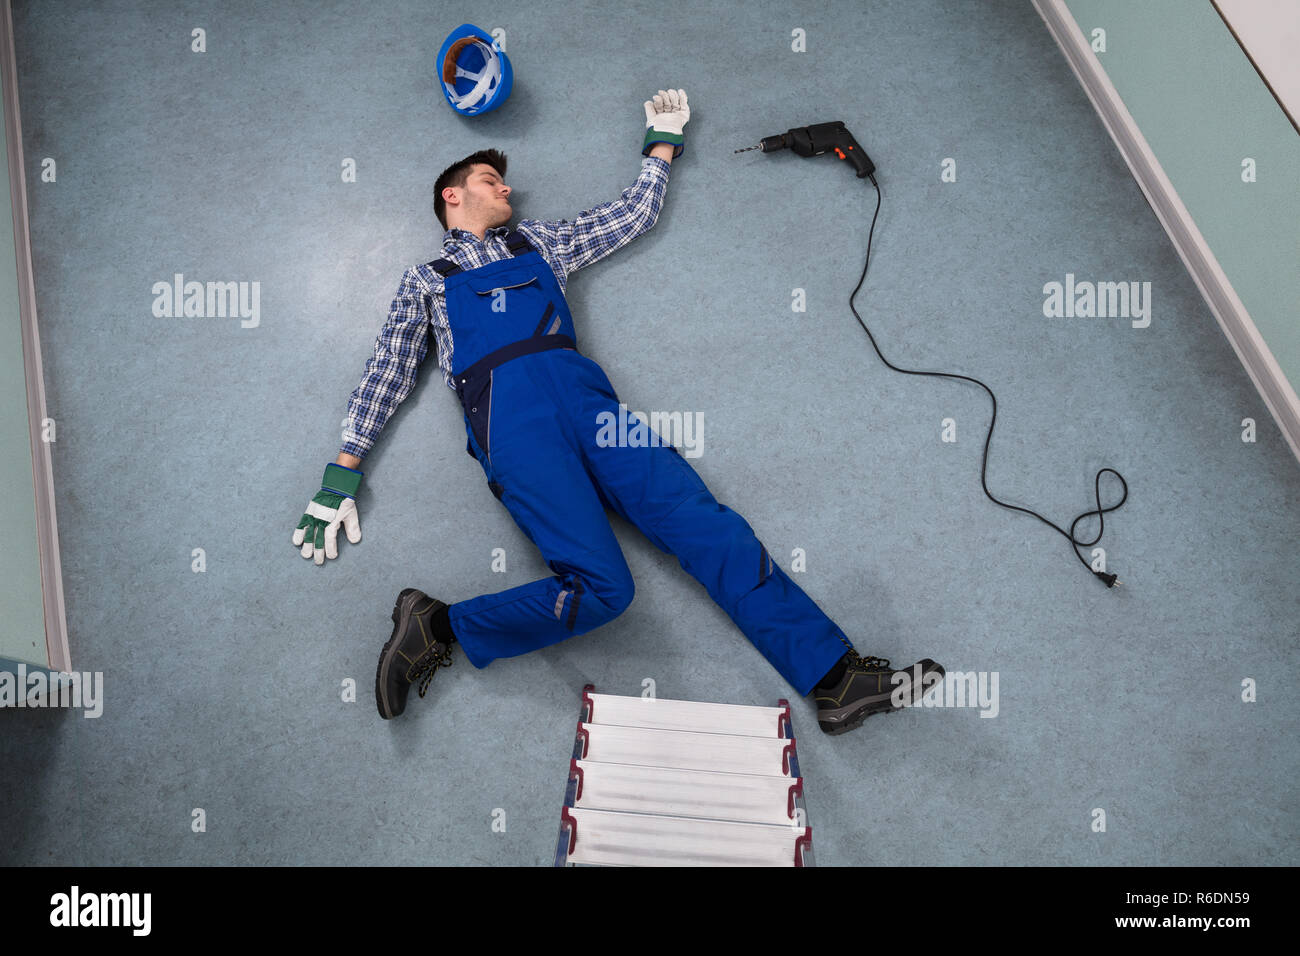 Unconscious Handyman Lying On Floor - Stock Image